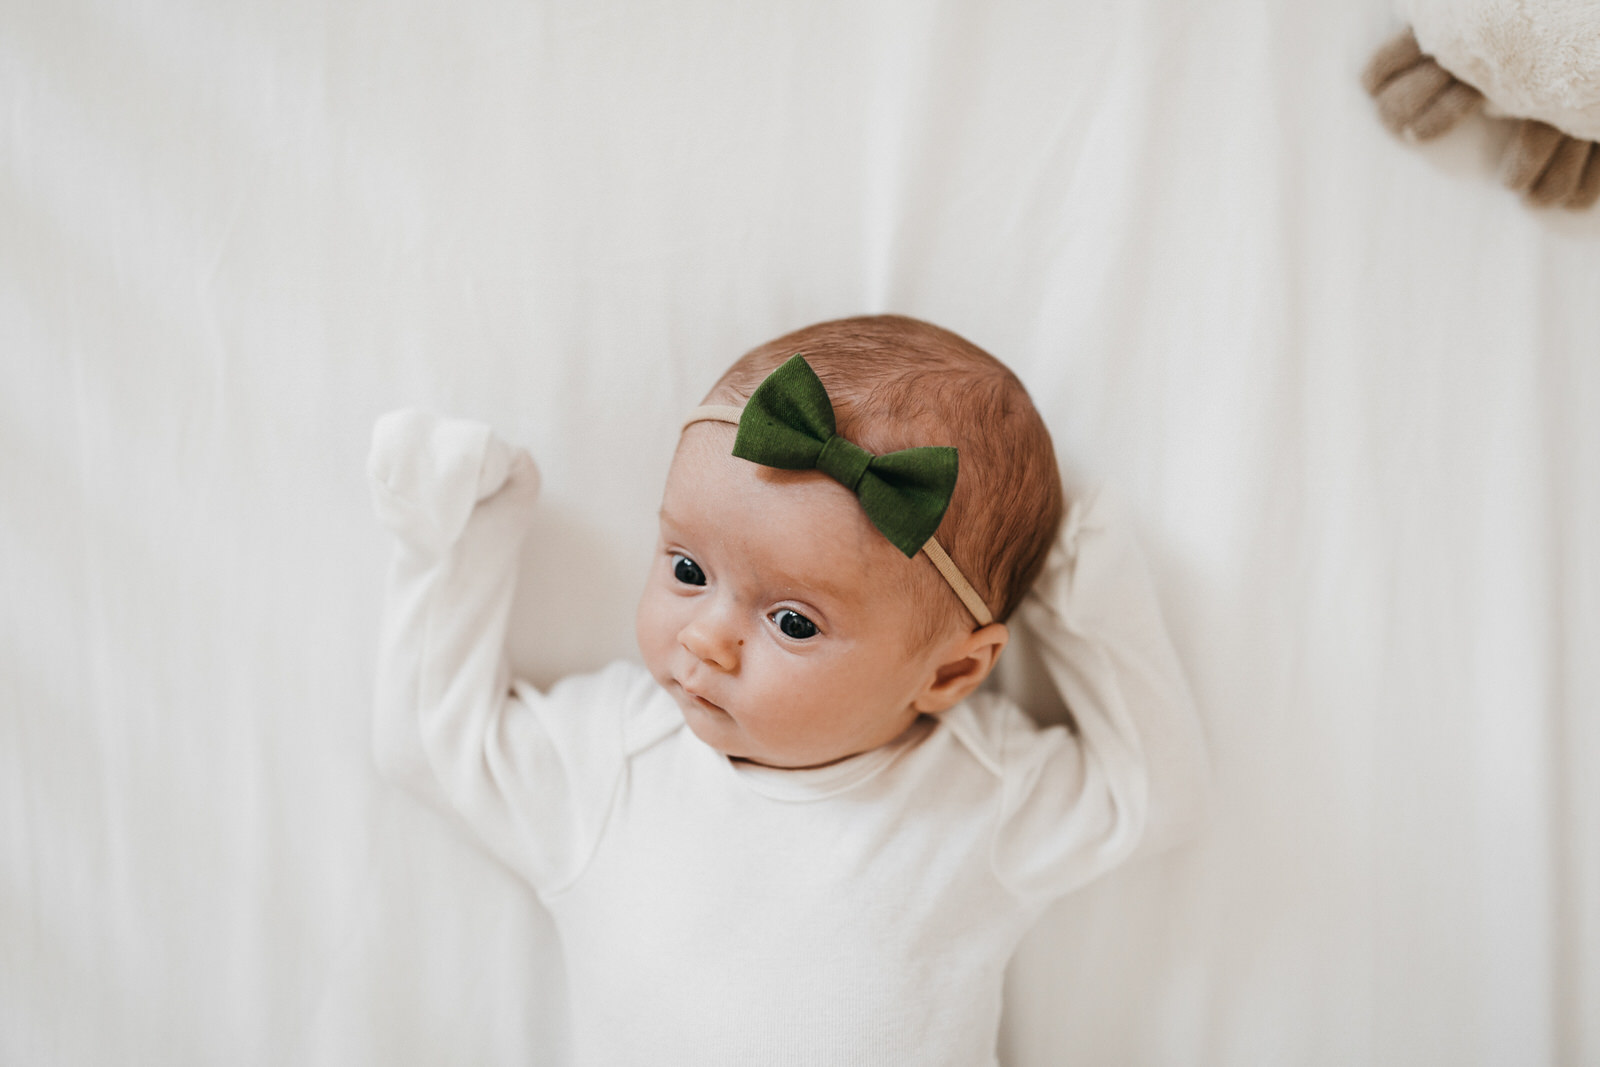 Chloé - 1 Month (4 of 30).jpg